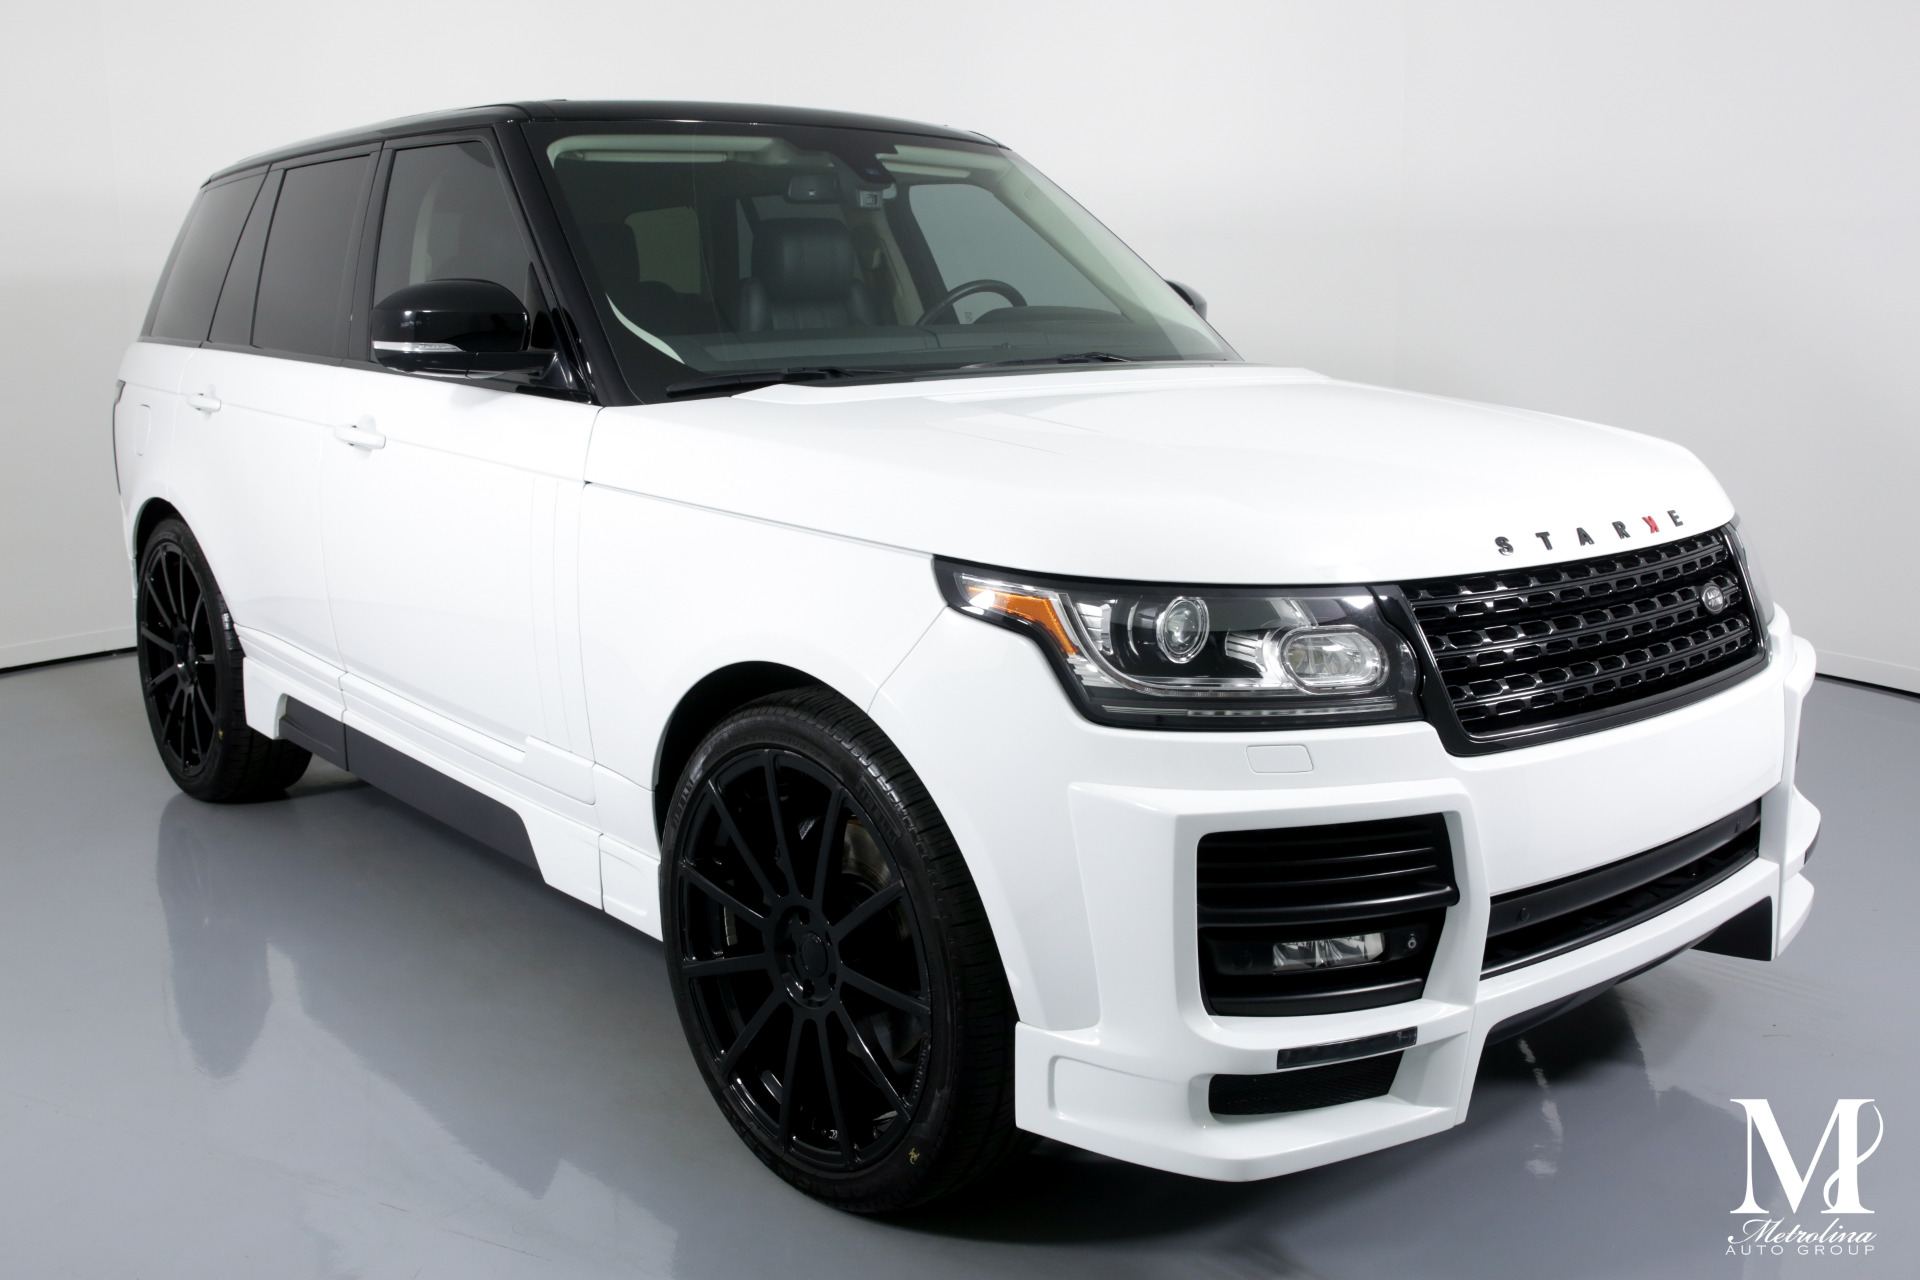 Used 2013 Land Rover Range Rover HSE for sale $69,996 at Metrolina Auto Group in Charlotte NC 28217 - 2